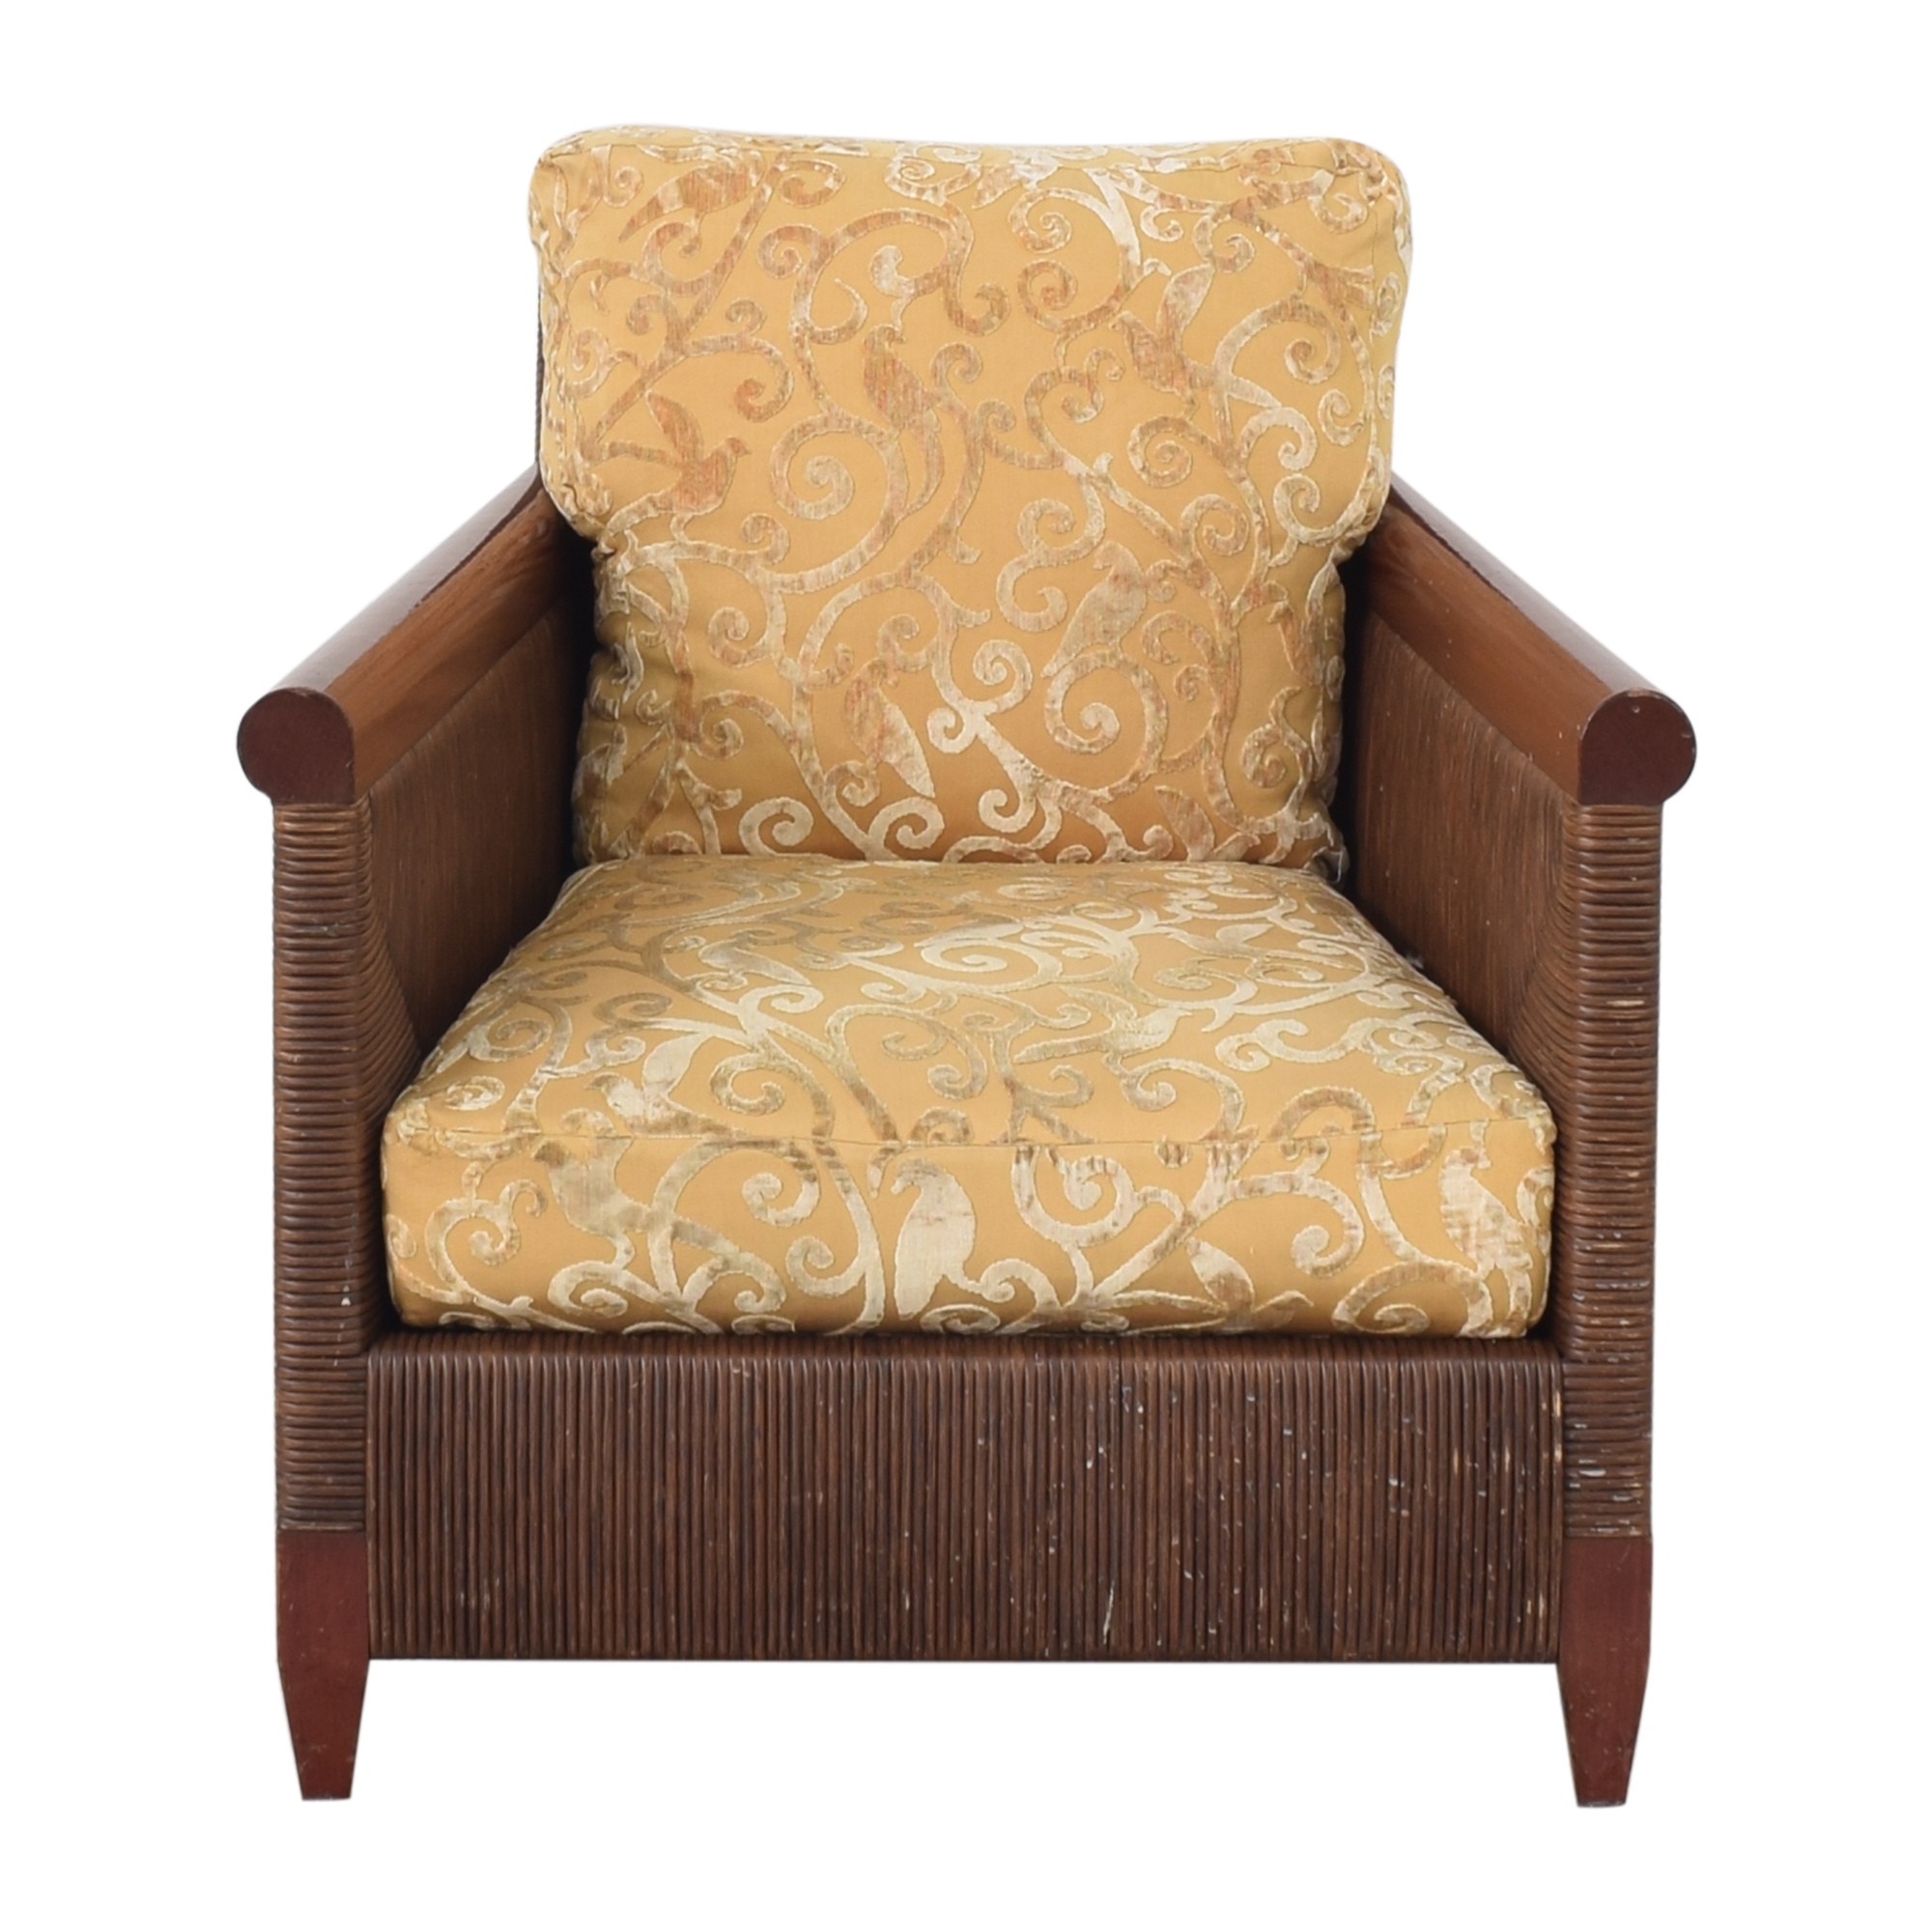 Donghia Donghia by John Hutton Mahogany and Wicker Lounger ct